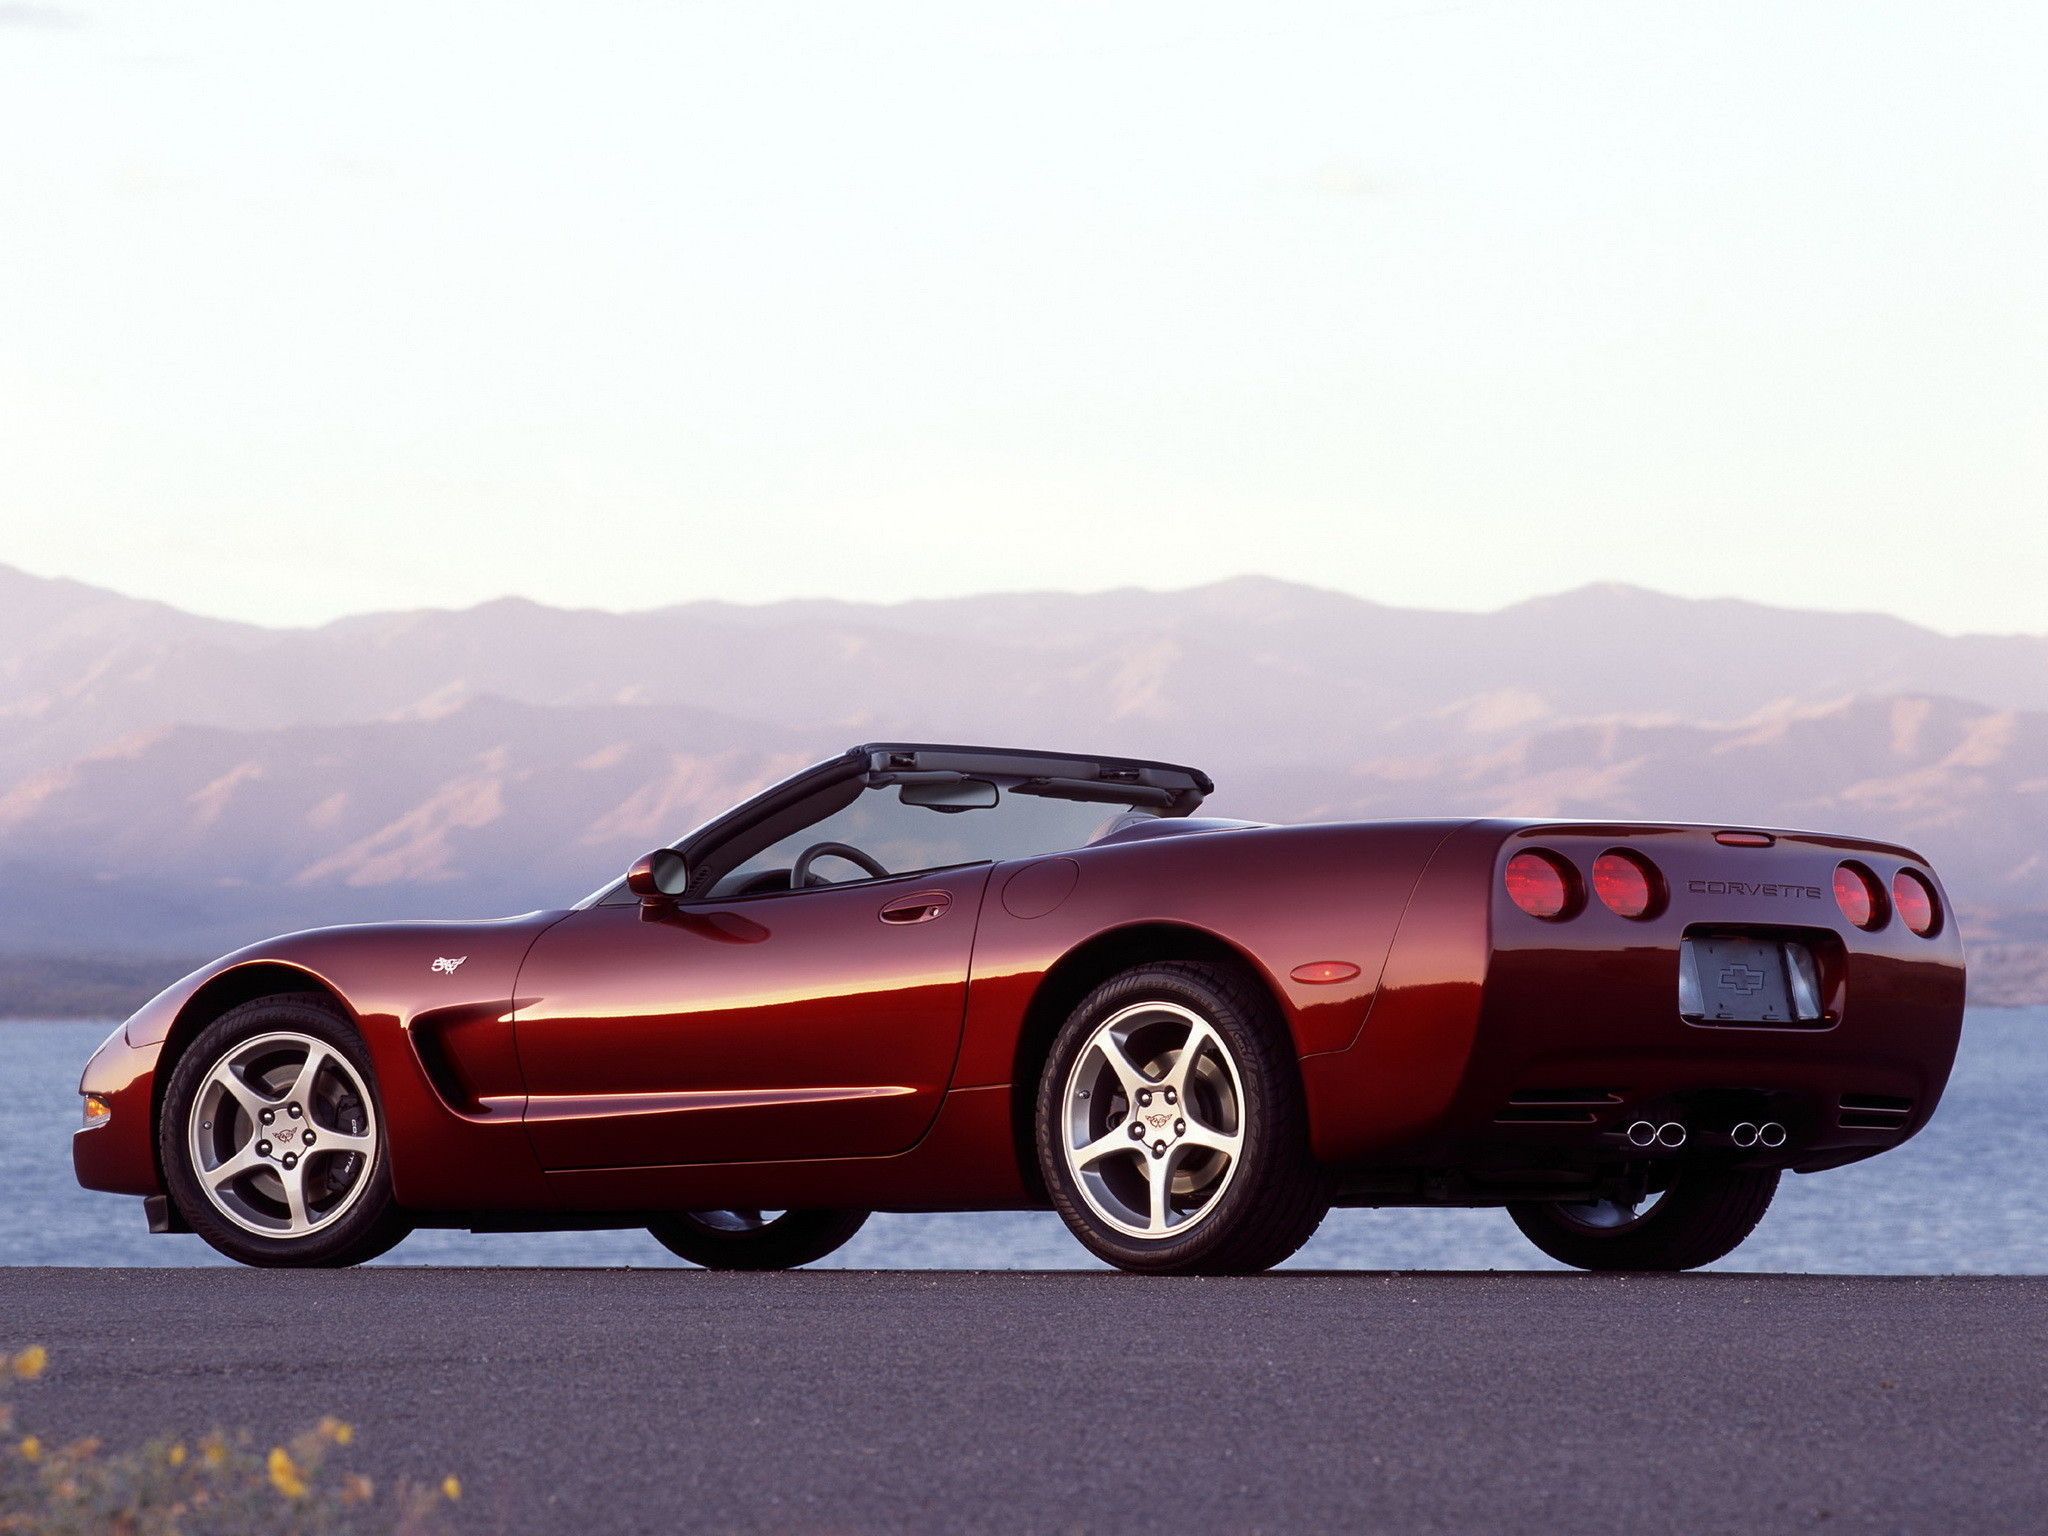 c5 corvette wallpaper 58 images. Black Bedroom Furniture Sets. Home Design Ideas